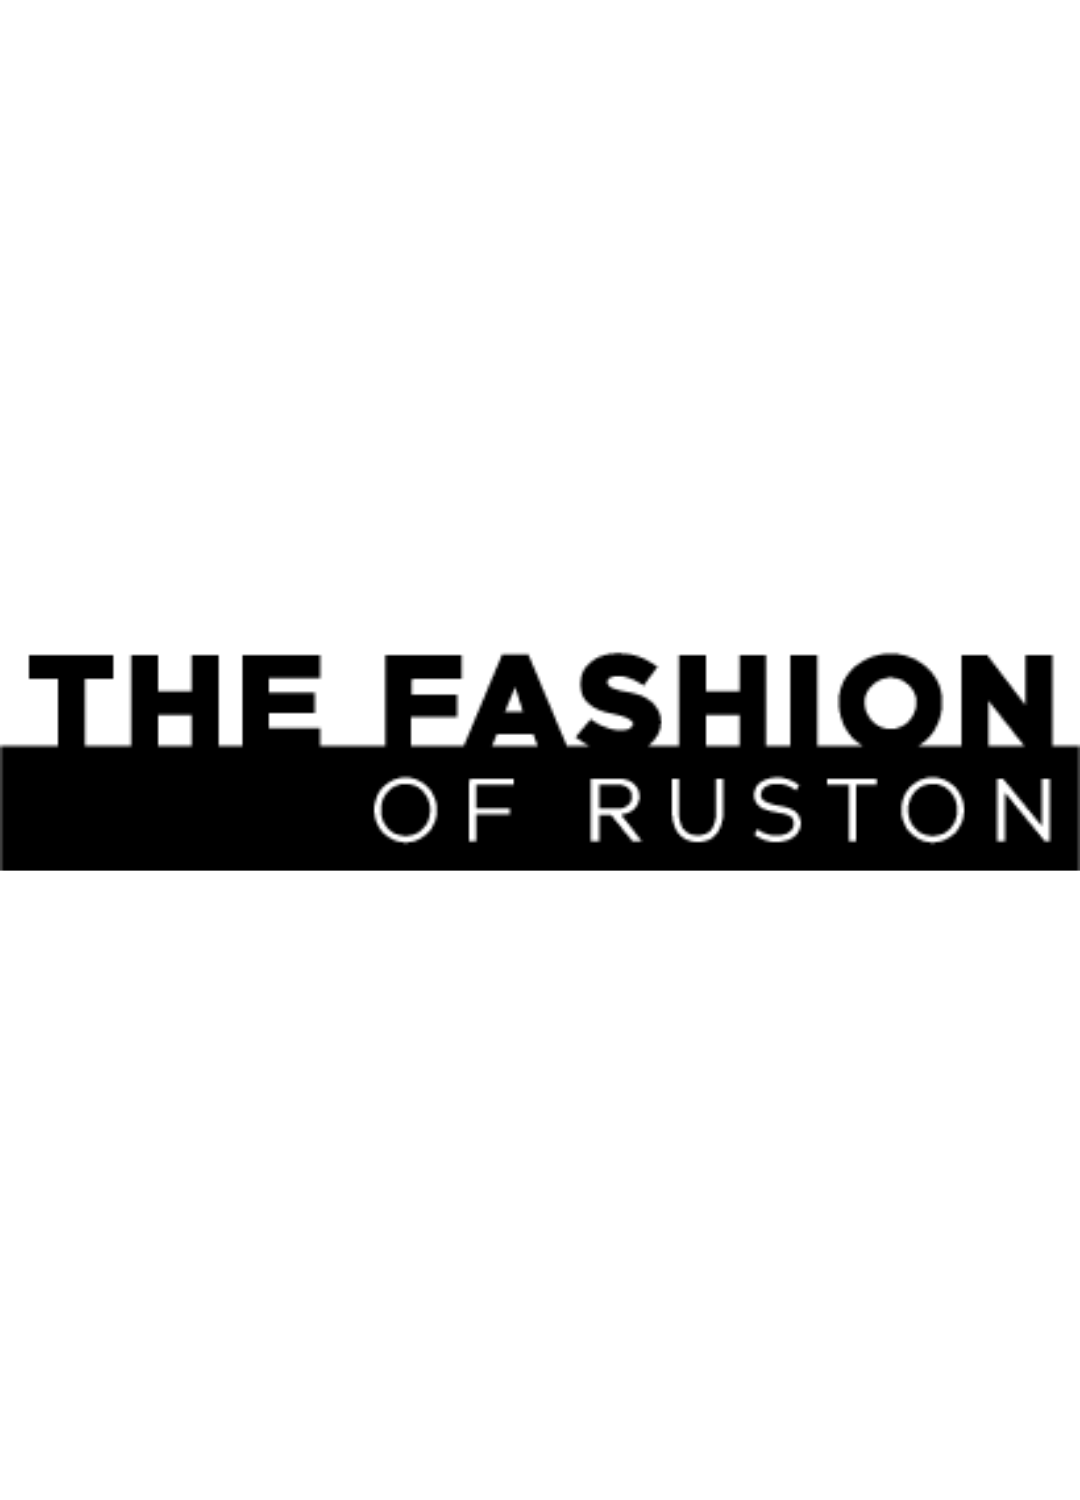 BuDhaGirl's June Store of the Month: The Fashion of Ruston